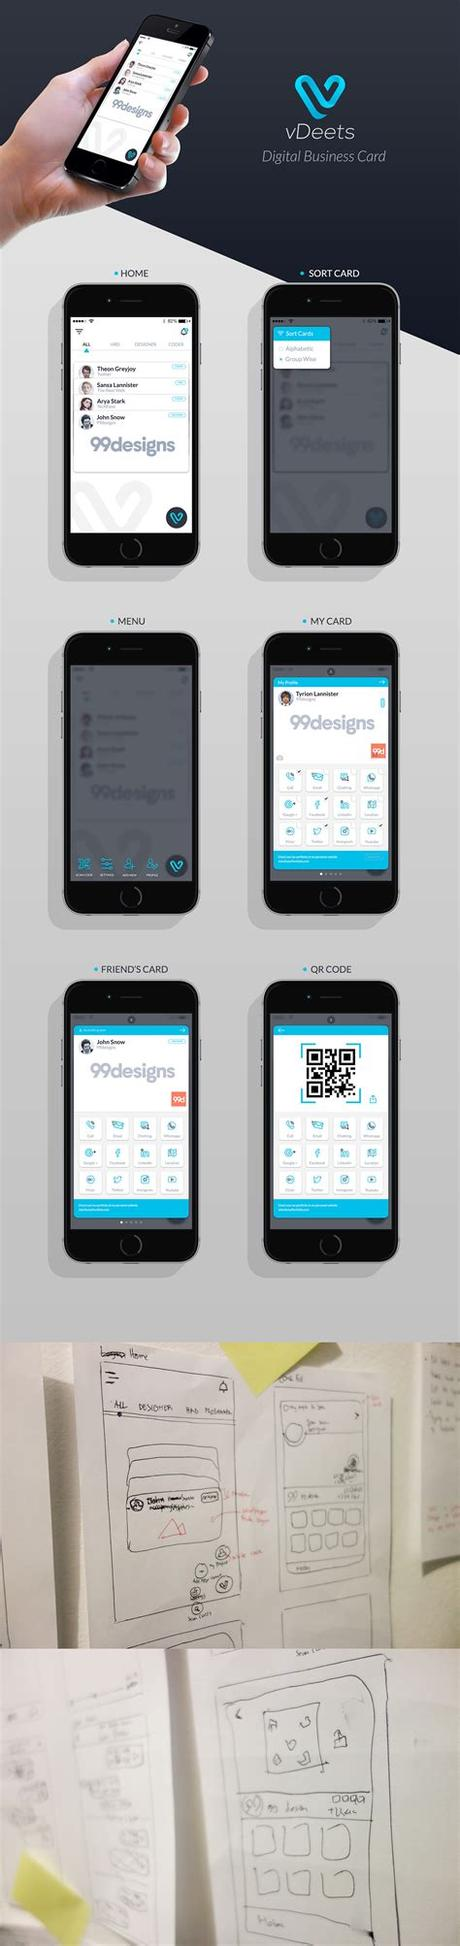 The last business card you will ever need. Digital Business Card App UI/UX on Behance